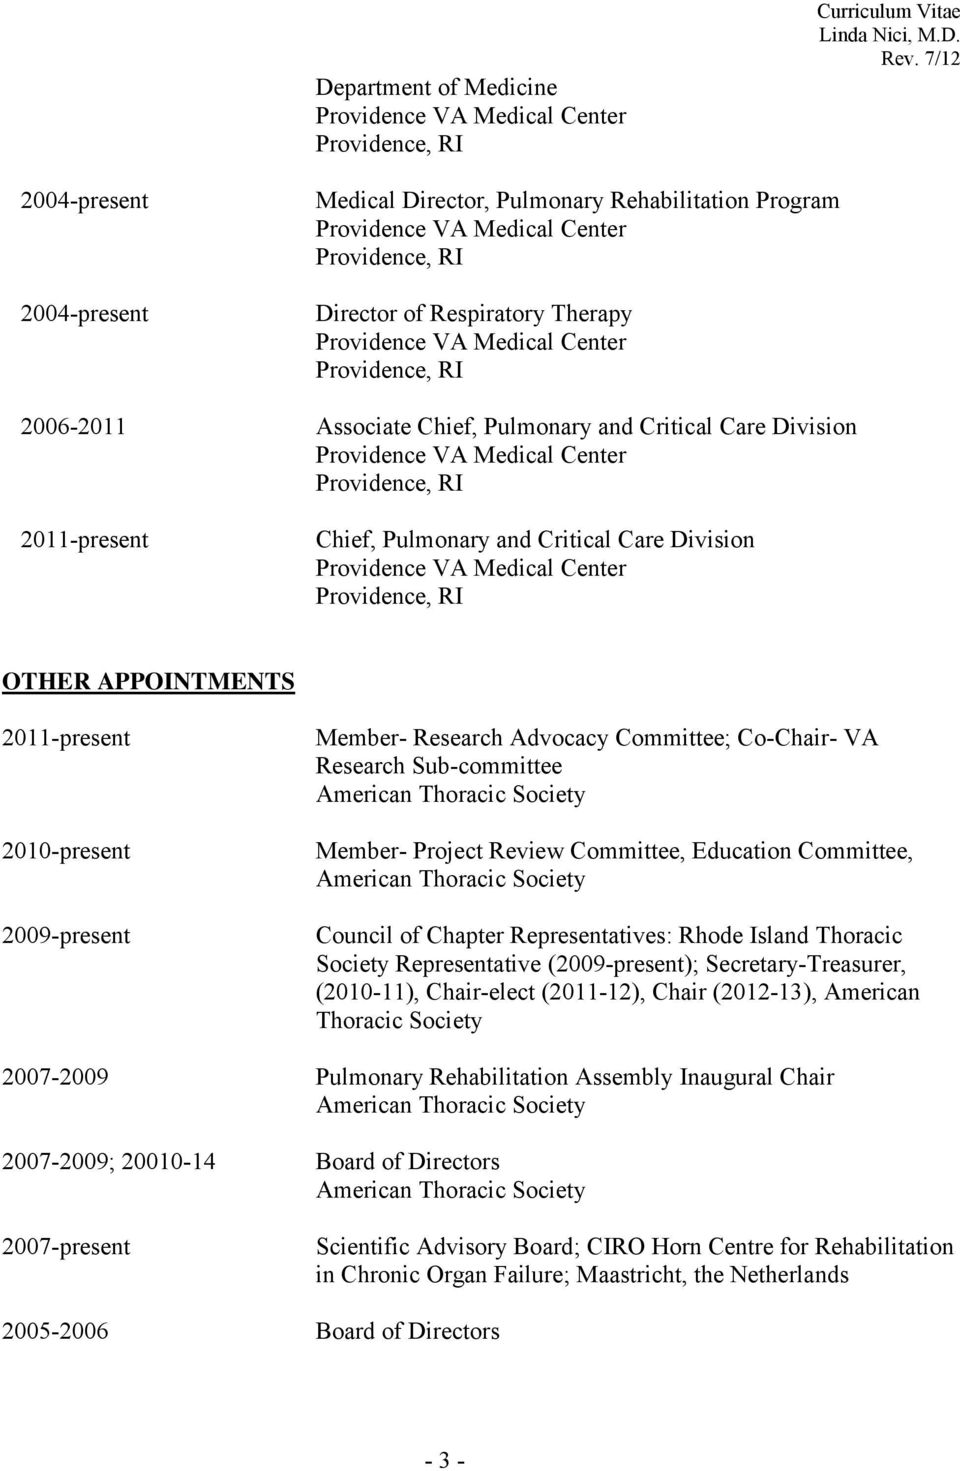 2011-present Chief, Pulmonary and Critical Care Division Providence VA Medical Center Providence, RI OTHER APPOINTMENTS 2011-present 2010-present 2009-present Member- Research Advocacy Committee;